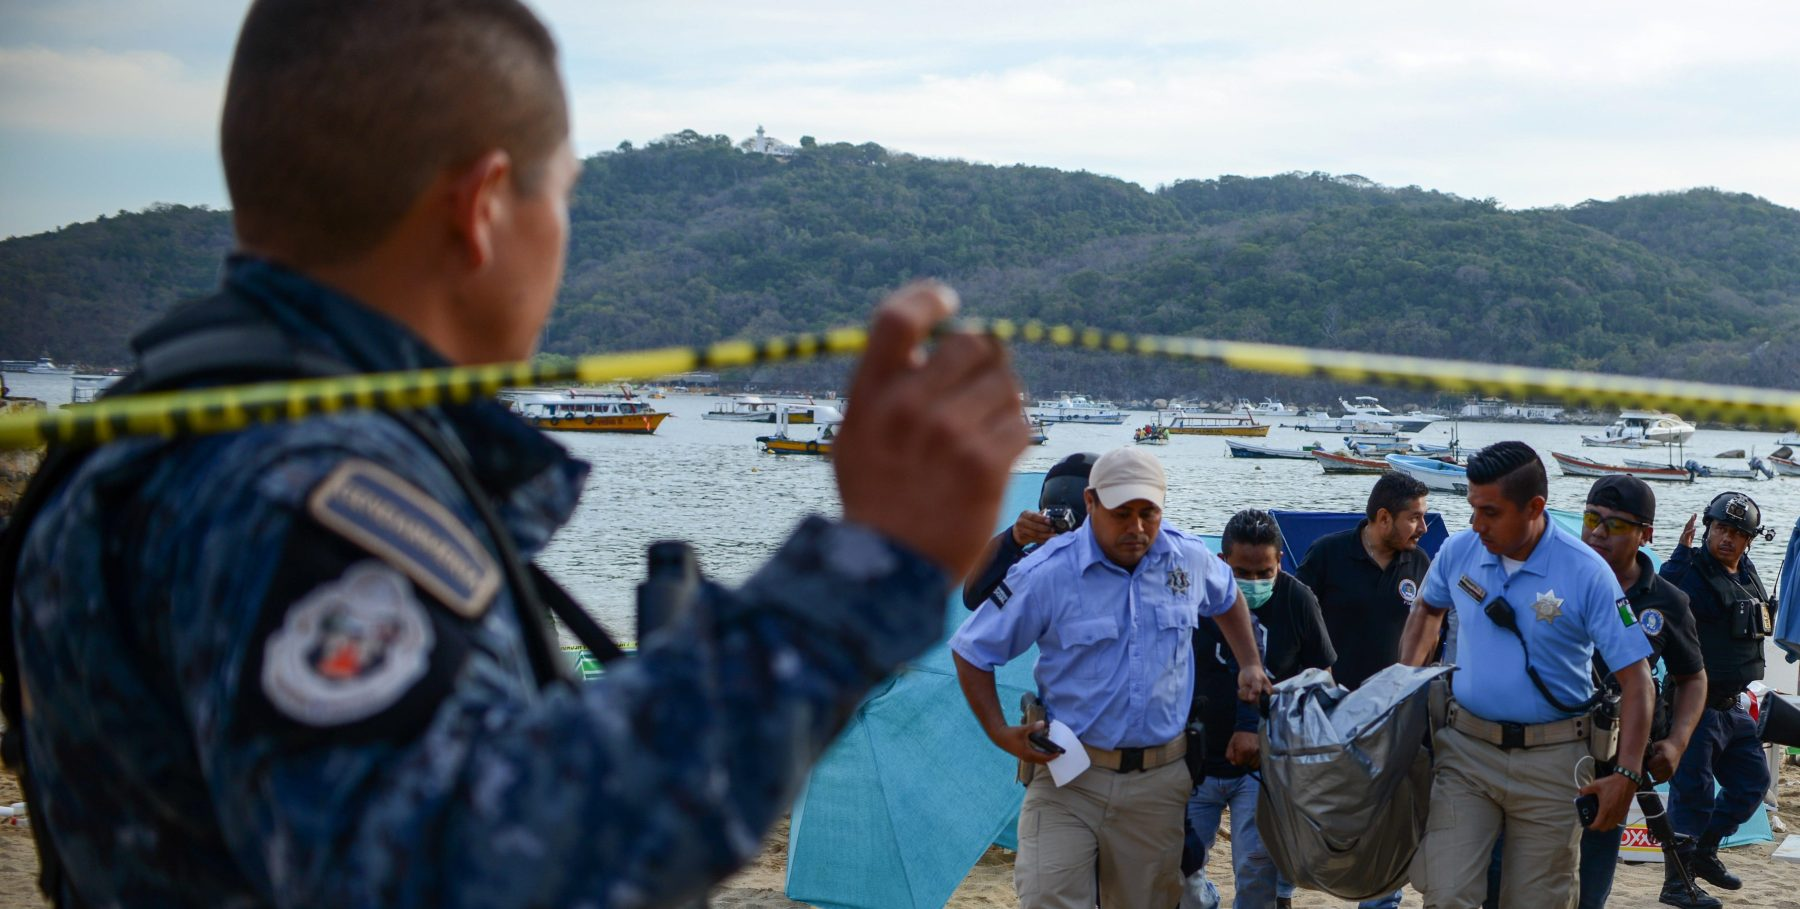 Forensic personnel and police officers carry the body of a murdered man, at Caletilla beach, in the touristic city of Acapulco, Guerrero State, Mexico, on March 18, 2018. Guerrero is one of Mexico's poorest and most violent states, where a lucrative drug trade has flourished. (FRANCISCO ROBLES/AFP/Getty Images)